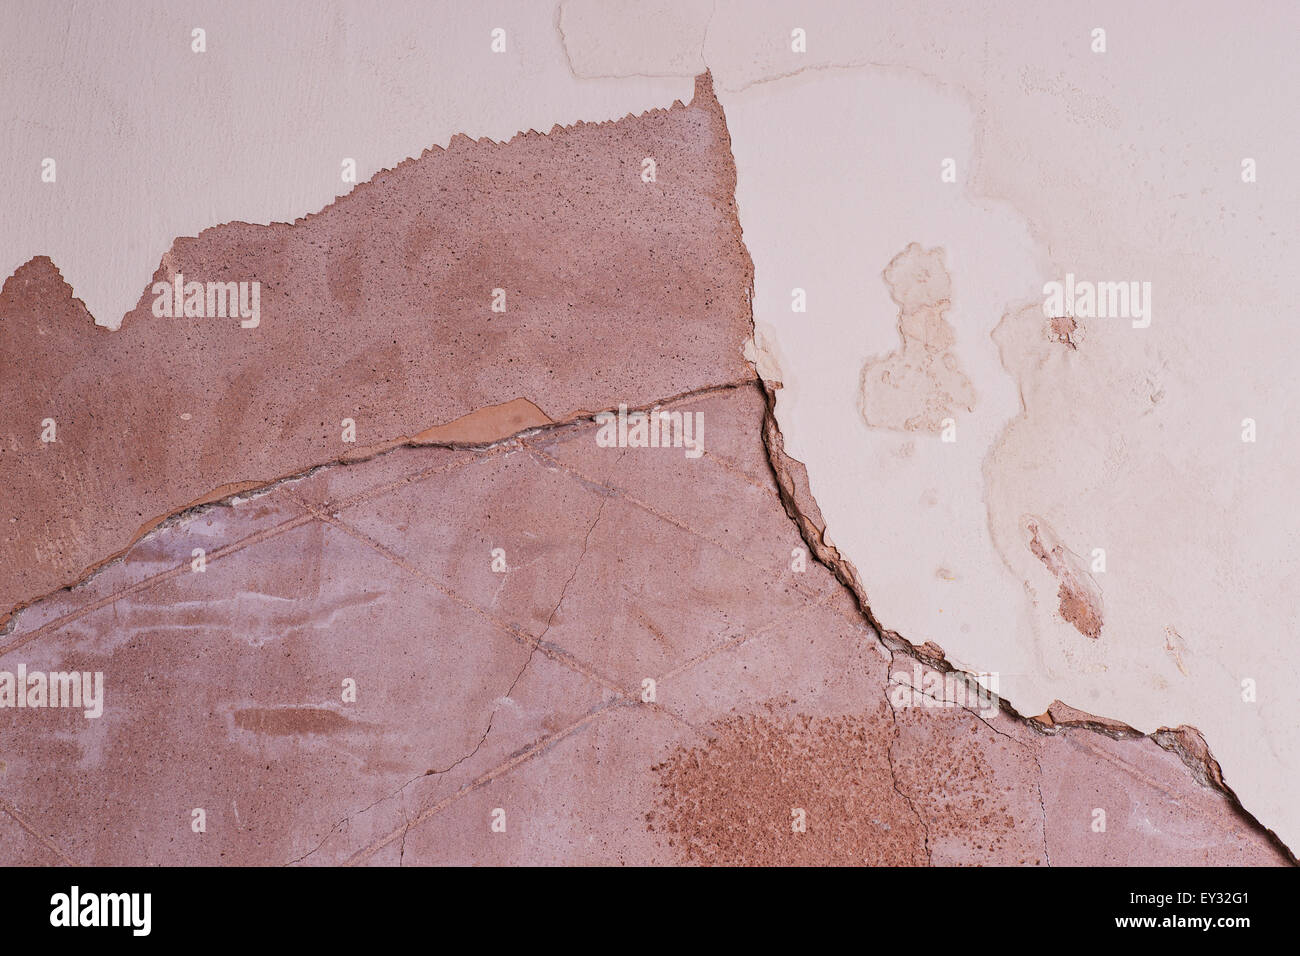 interior wall showing cracked and damaged plaster due to damp - Stock Image